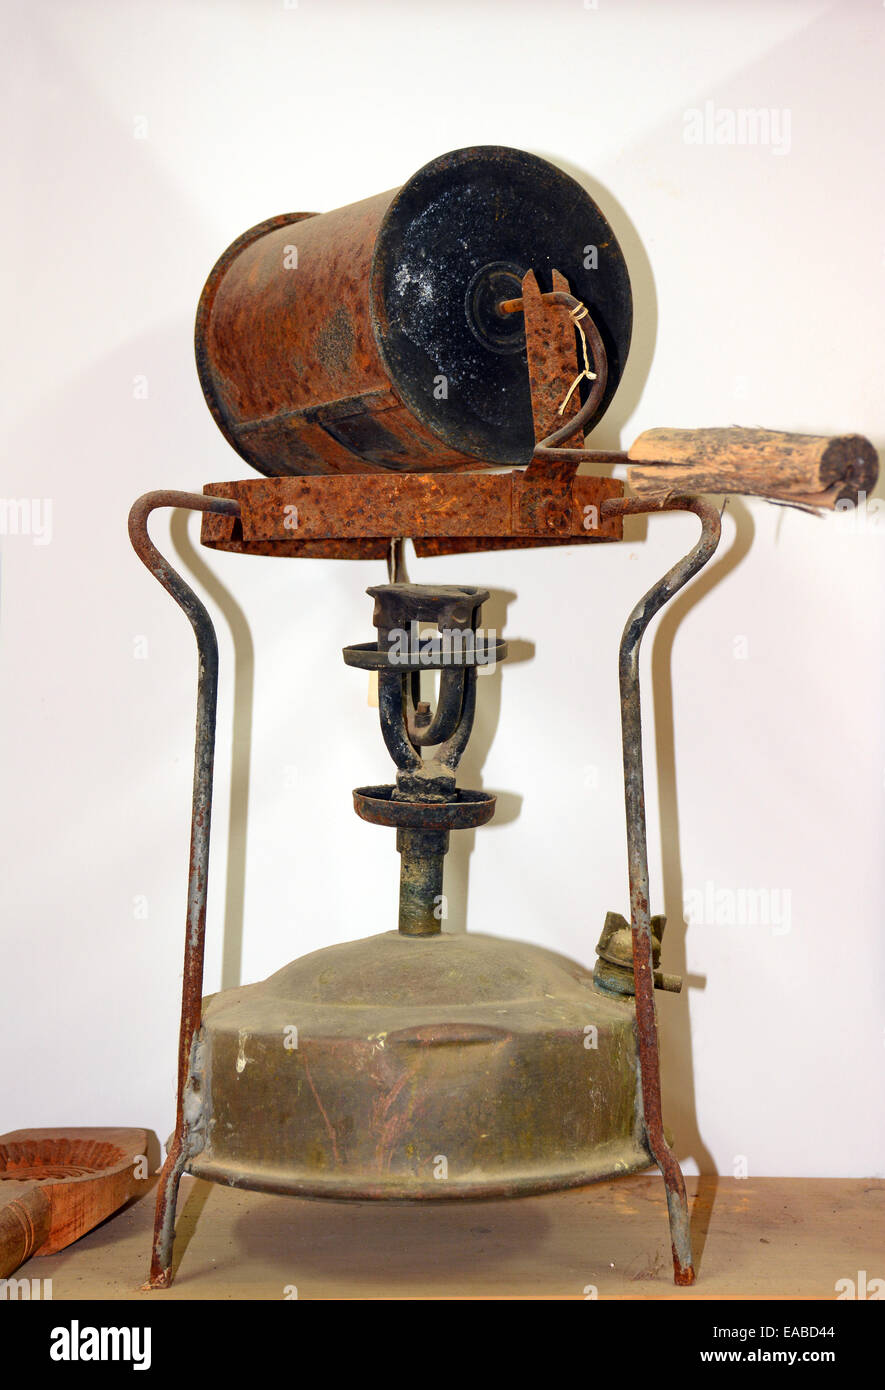 Old heating apparatus. - Stock Image